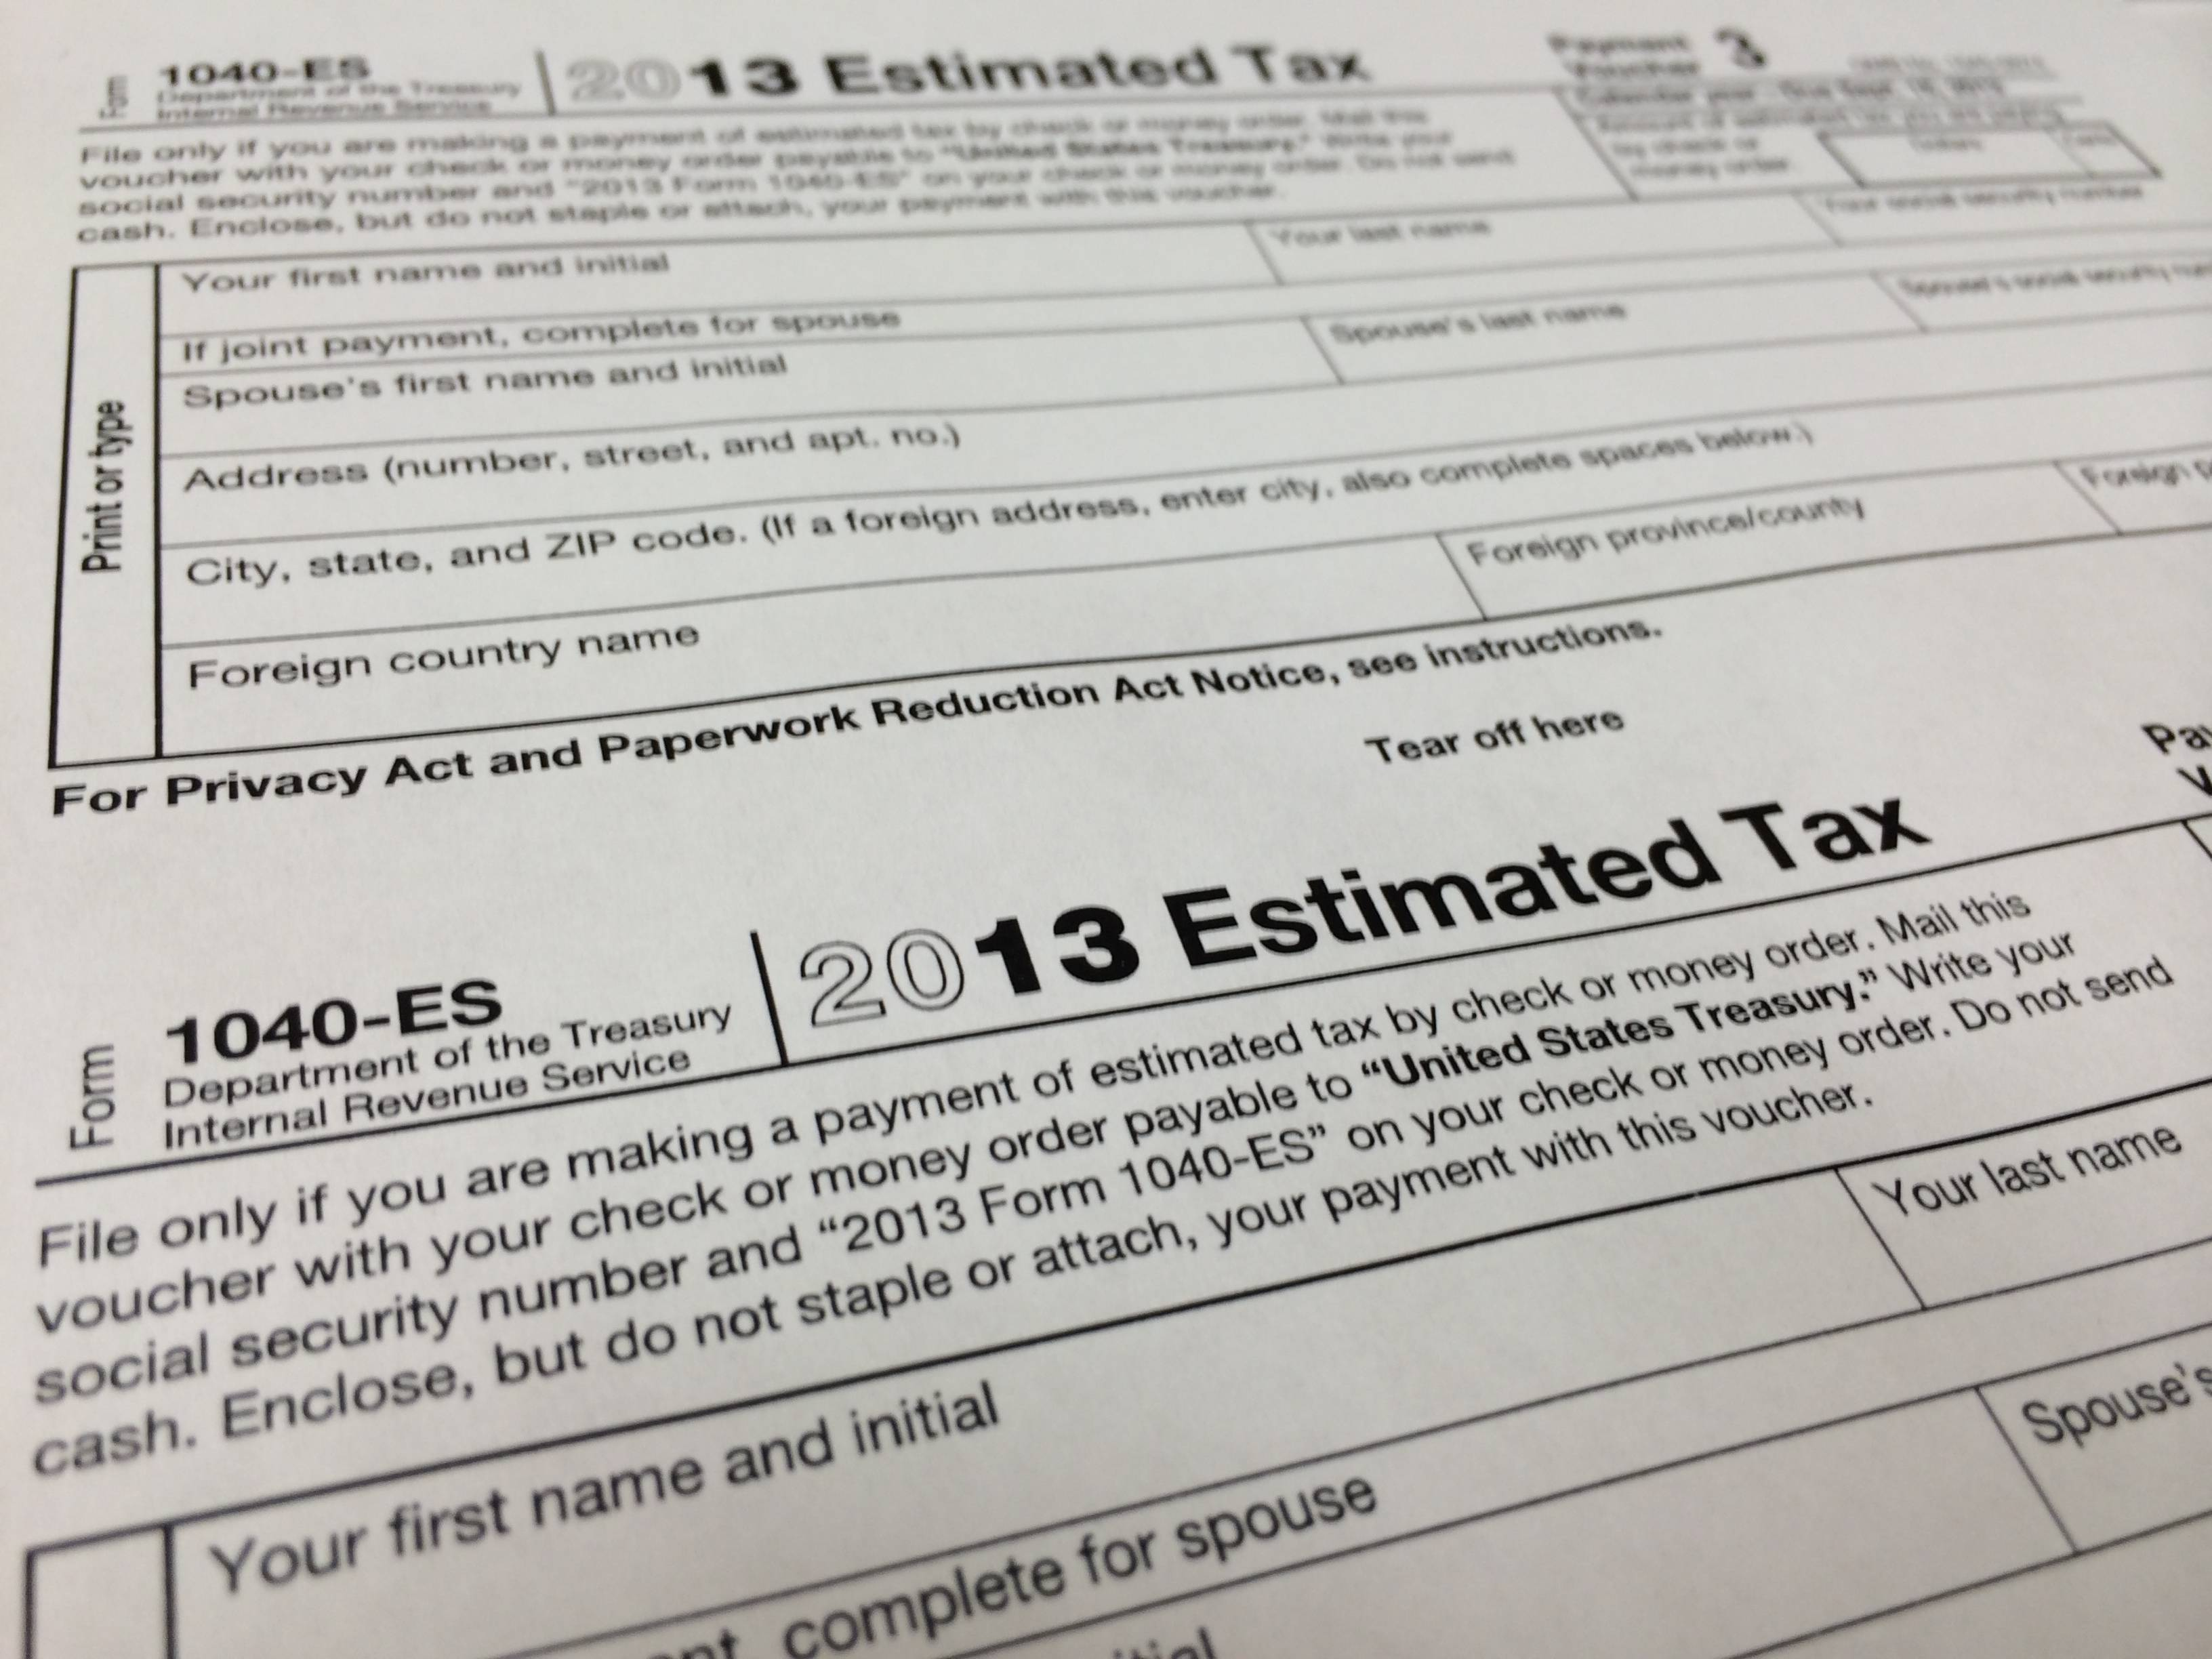 Key numbers to know for filing 2013 tax returns